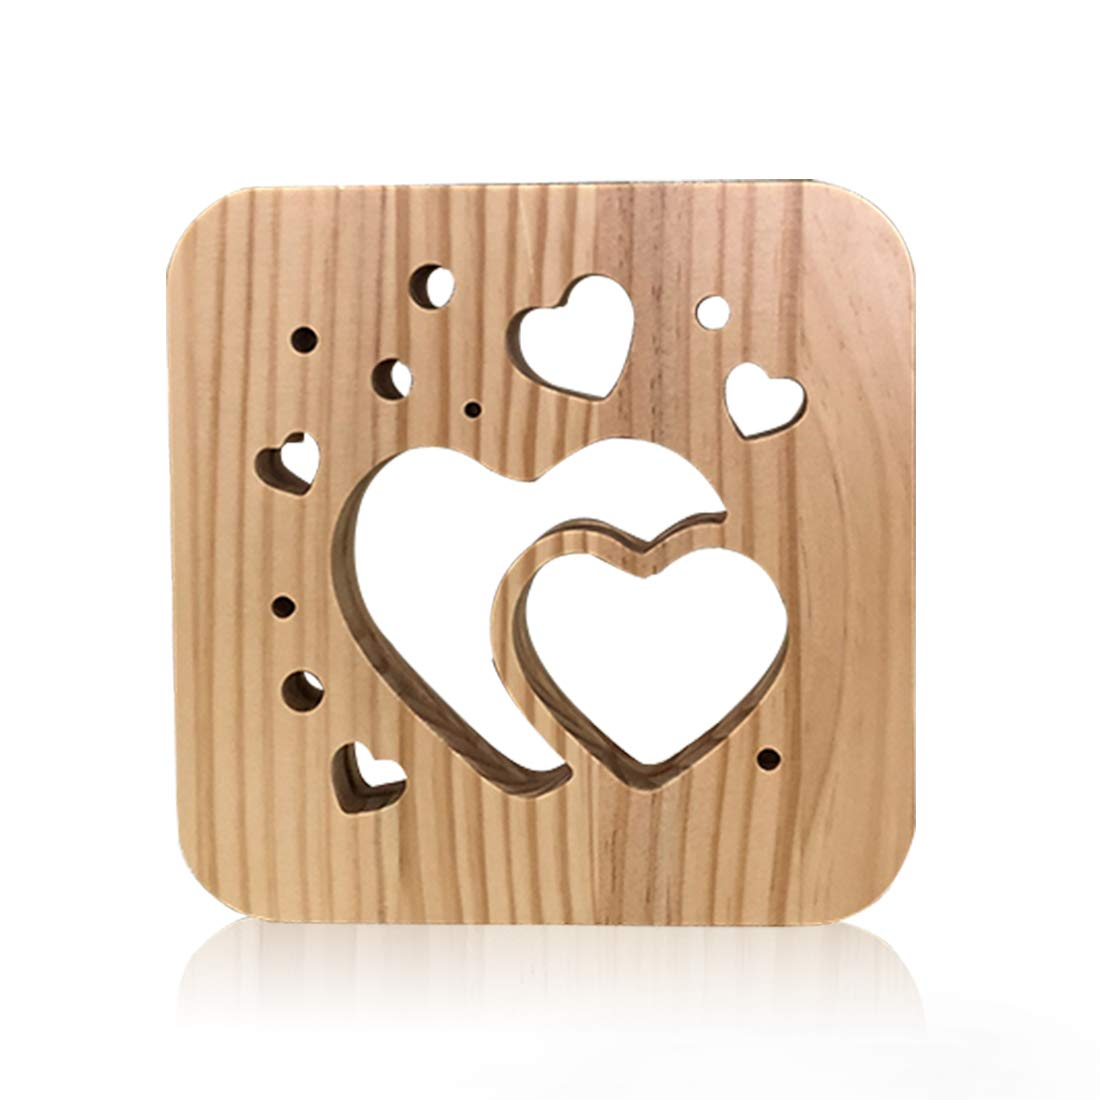 Wooden Heart Led Lamp for Children, LeKong 3D Wooden Carving Patterns, USB Plug in, Gift for Birthday & Friendship, Fit for Halloween & Christmas Decoration, 2018 New